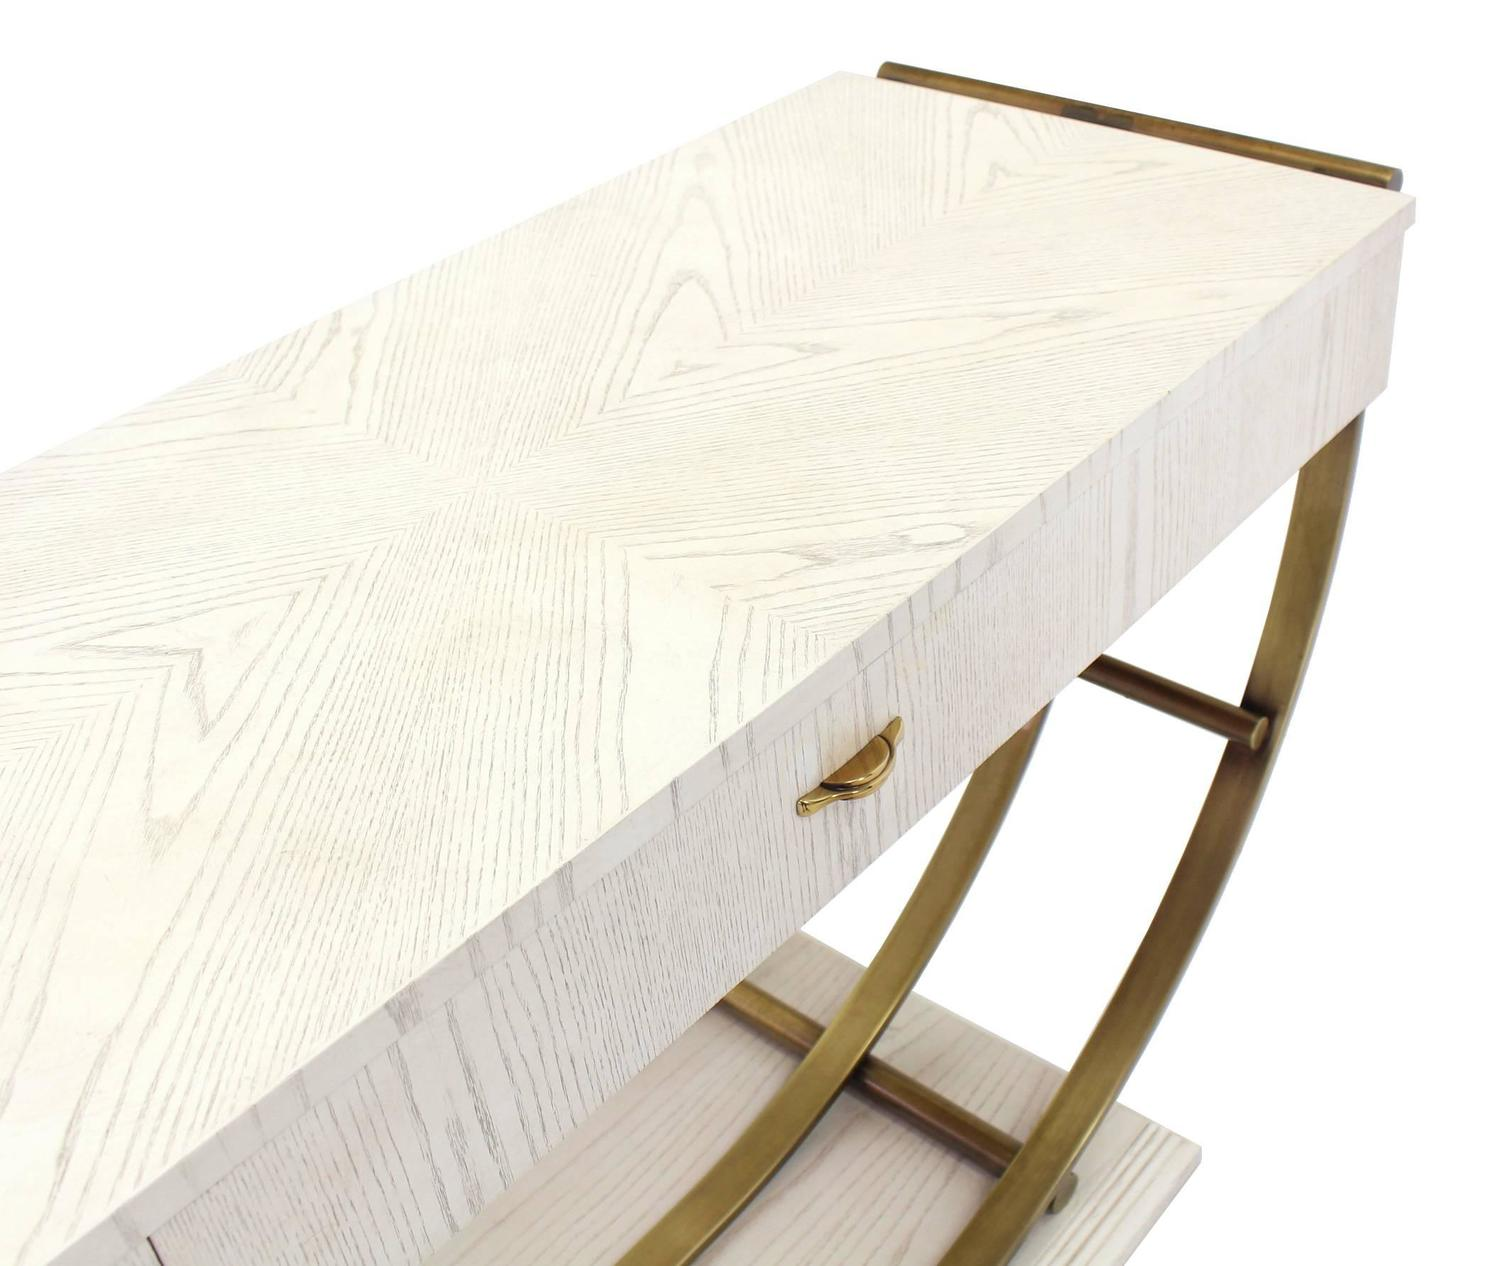 Marvelous photograph of White Pickled Oak Finish Brass U Shape Base Console Table For Sale at  with #634B2D color and 1500x1266 pixels